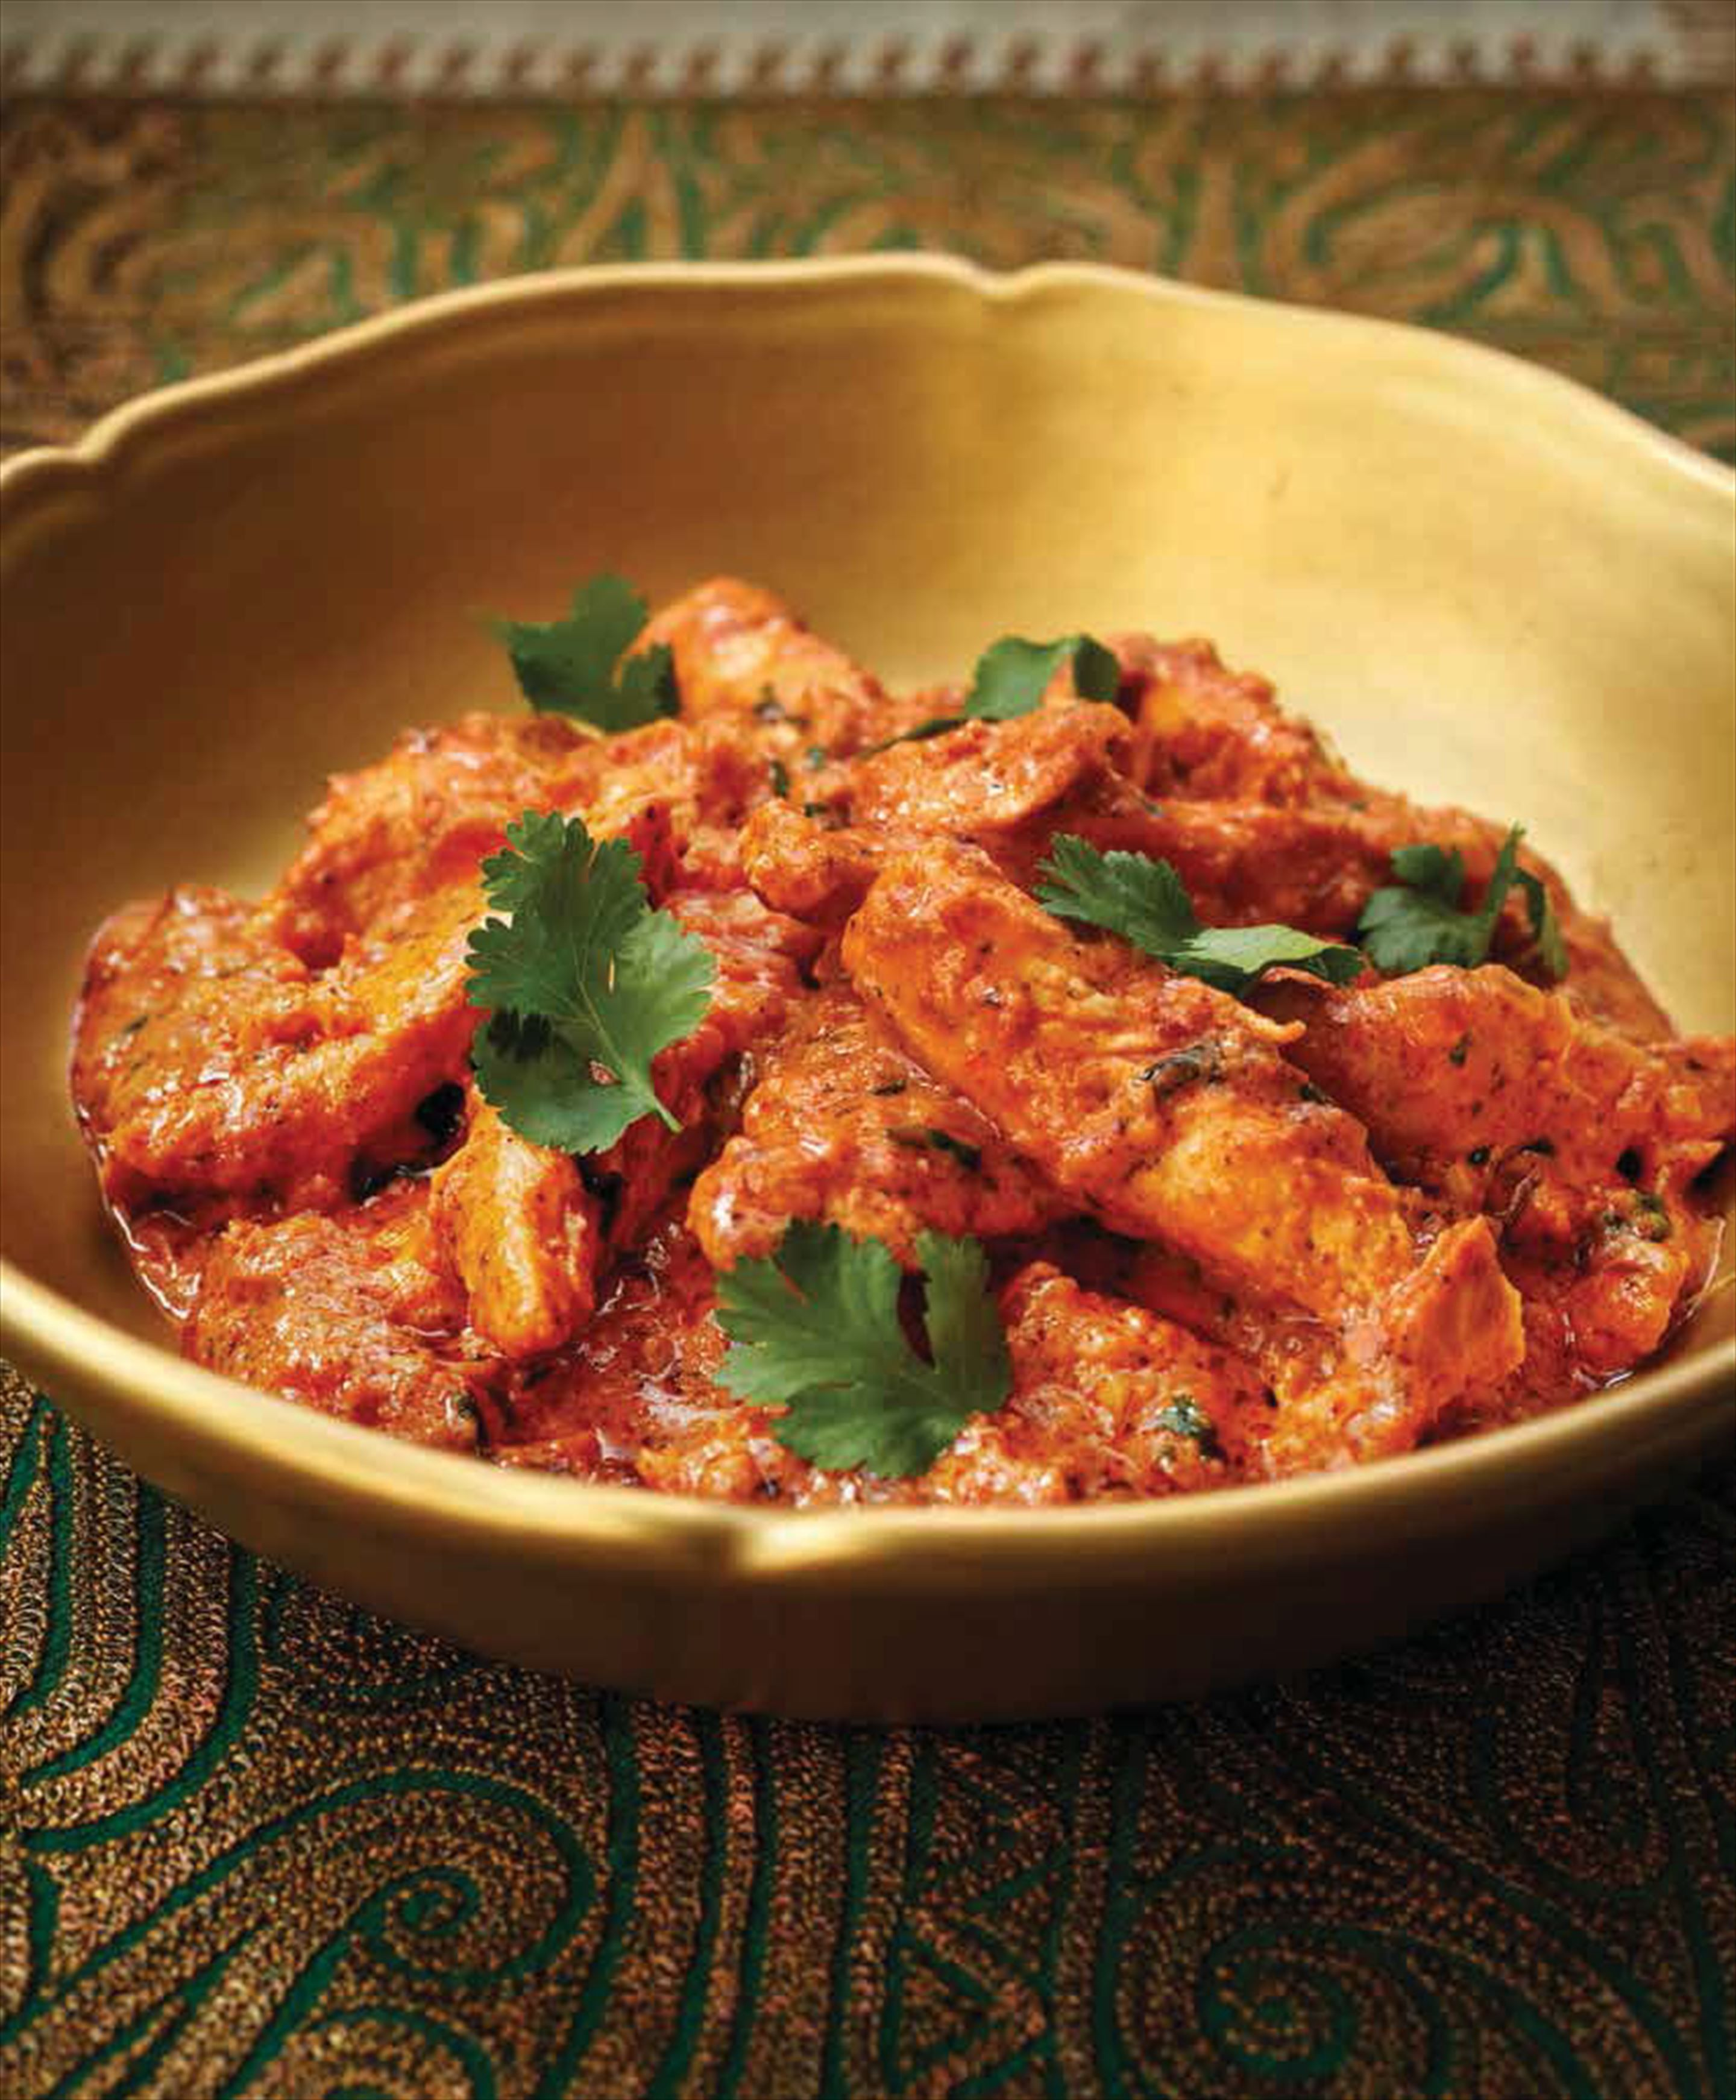 Chicken butter masala recipe from indian festival feasts by vivek prawn balchao recipe by vivek singh for the spice mix mix together the roasted cumin seeds peppercorns and red chilli powder in a food processor until forumfinder Image collections